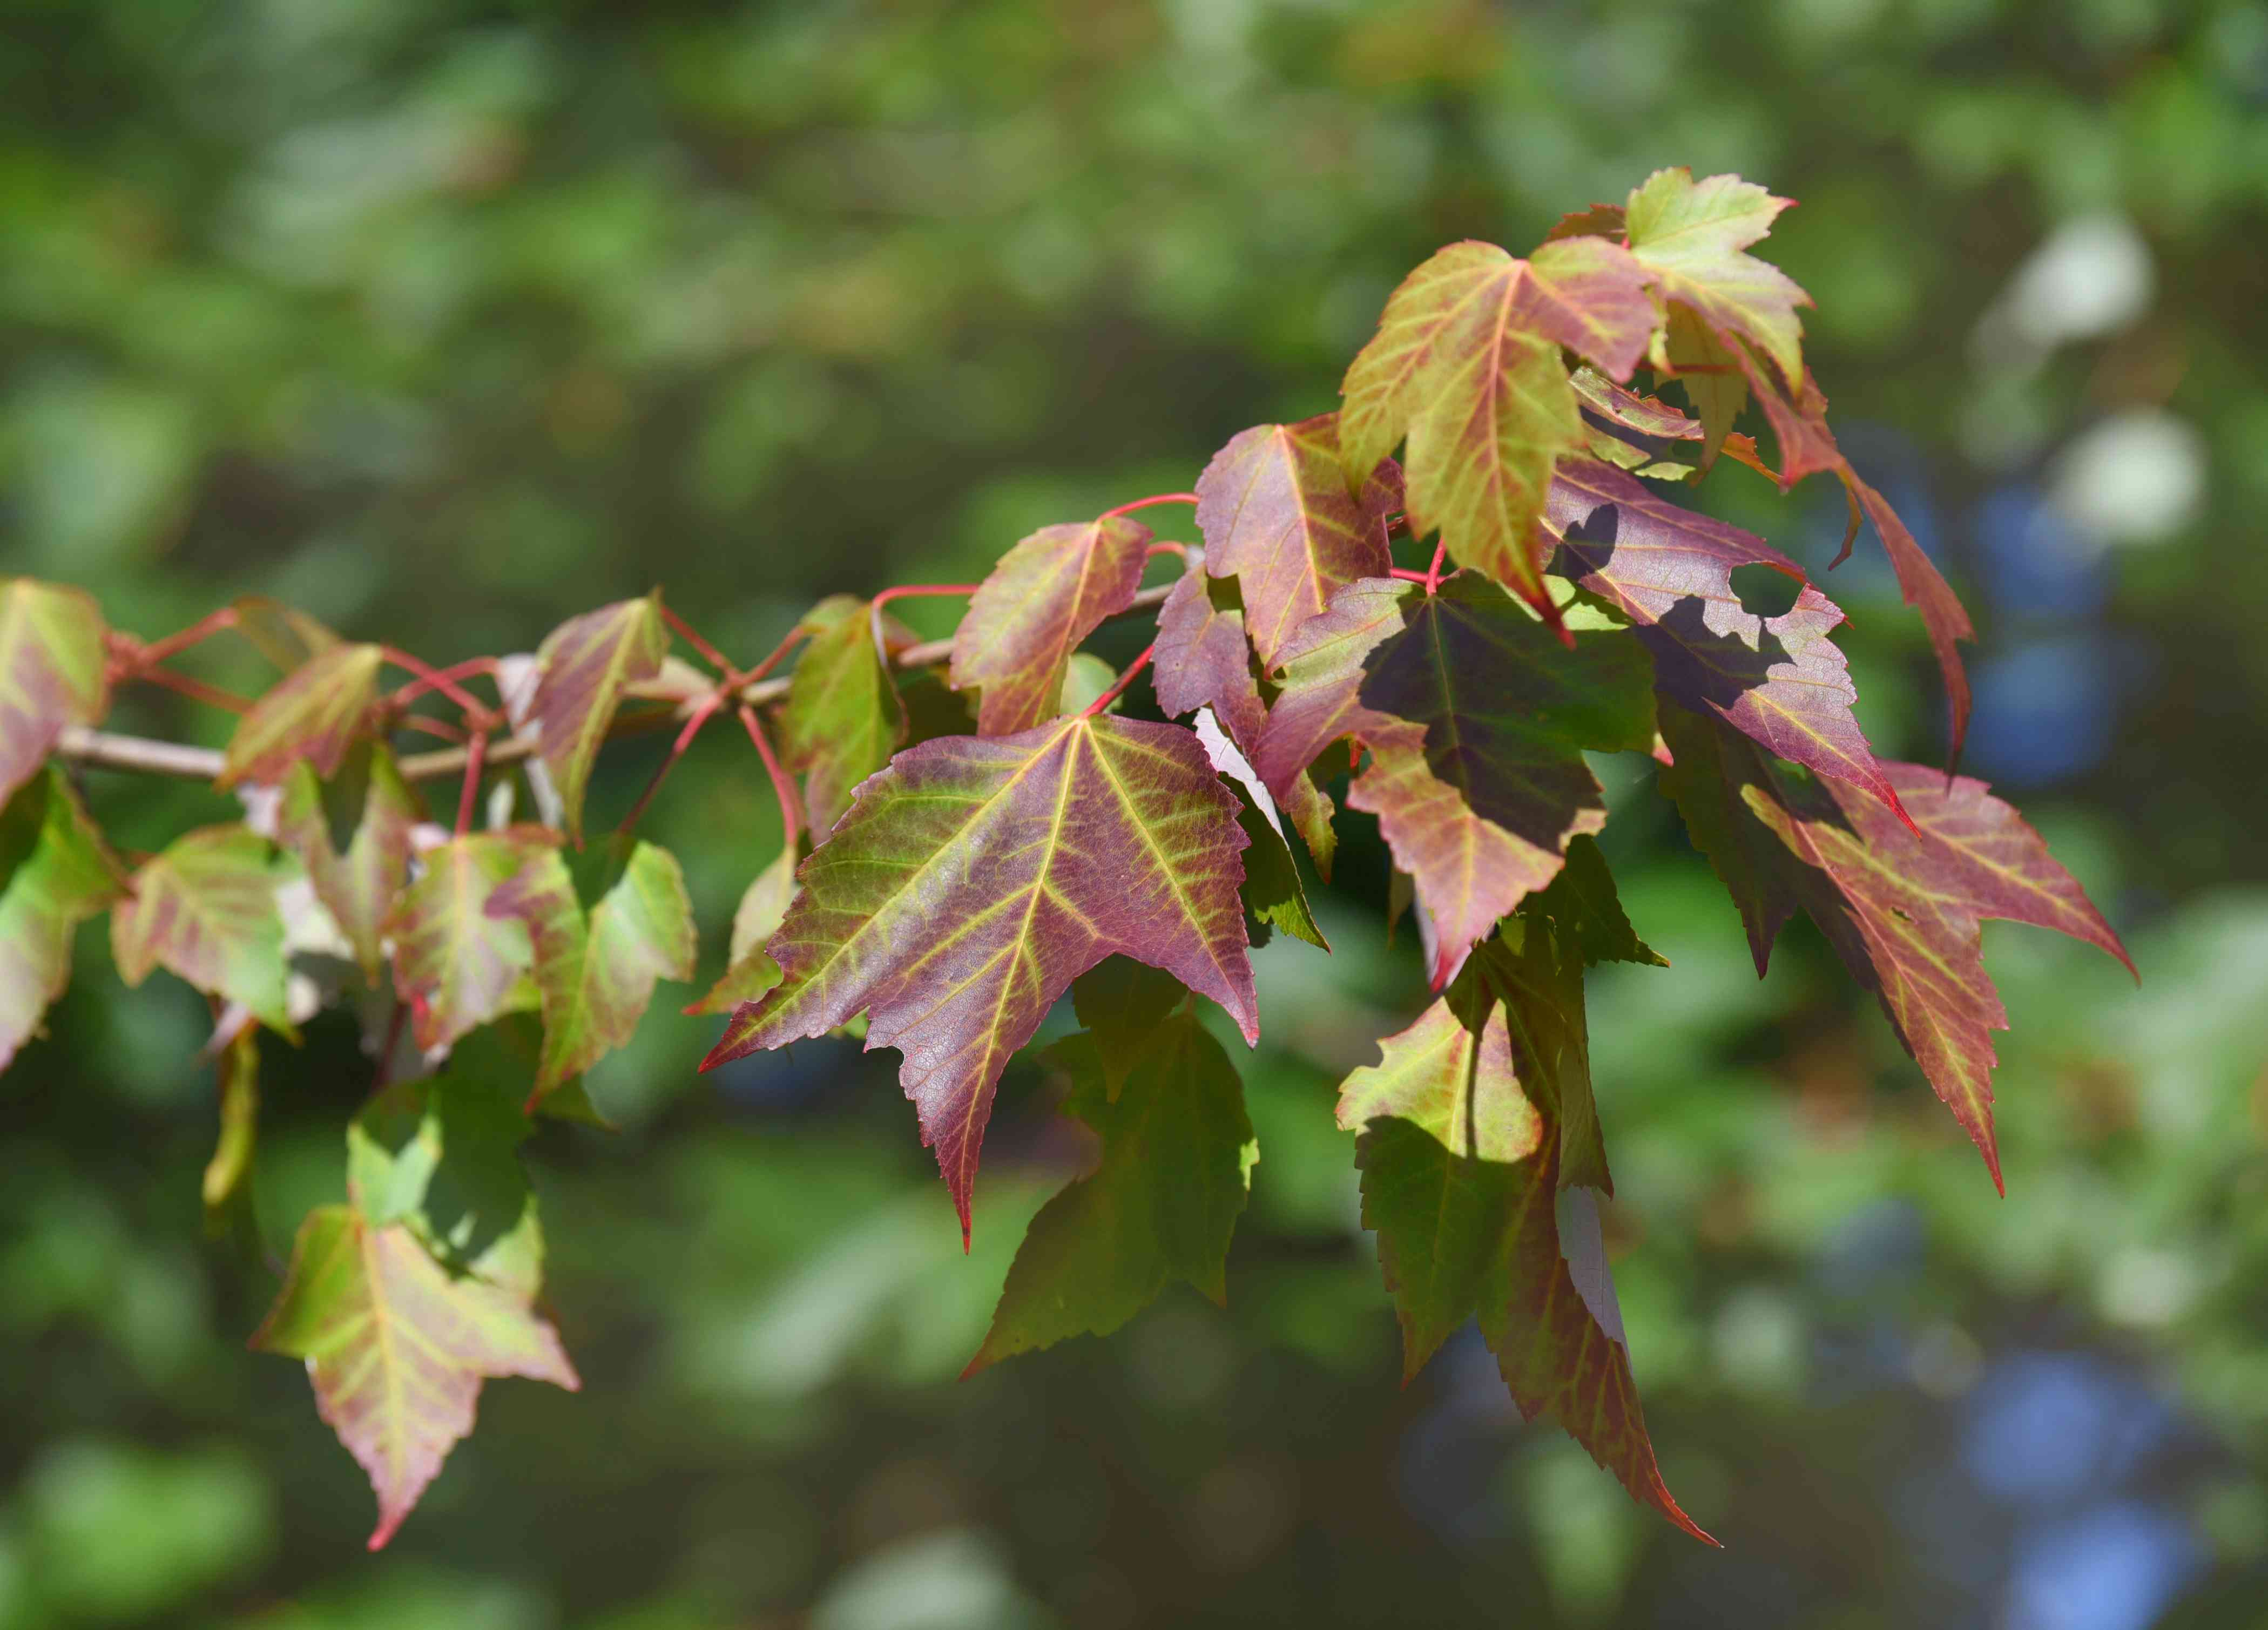 Red sunset maple tree branch with reddish-green three-lobes leaves in sunlight